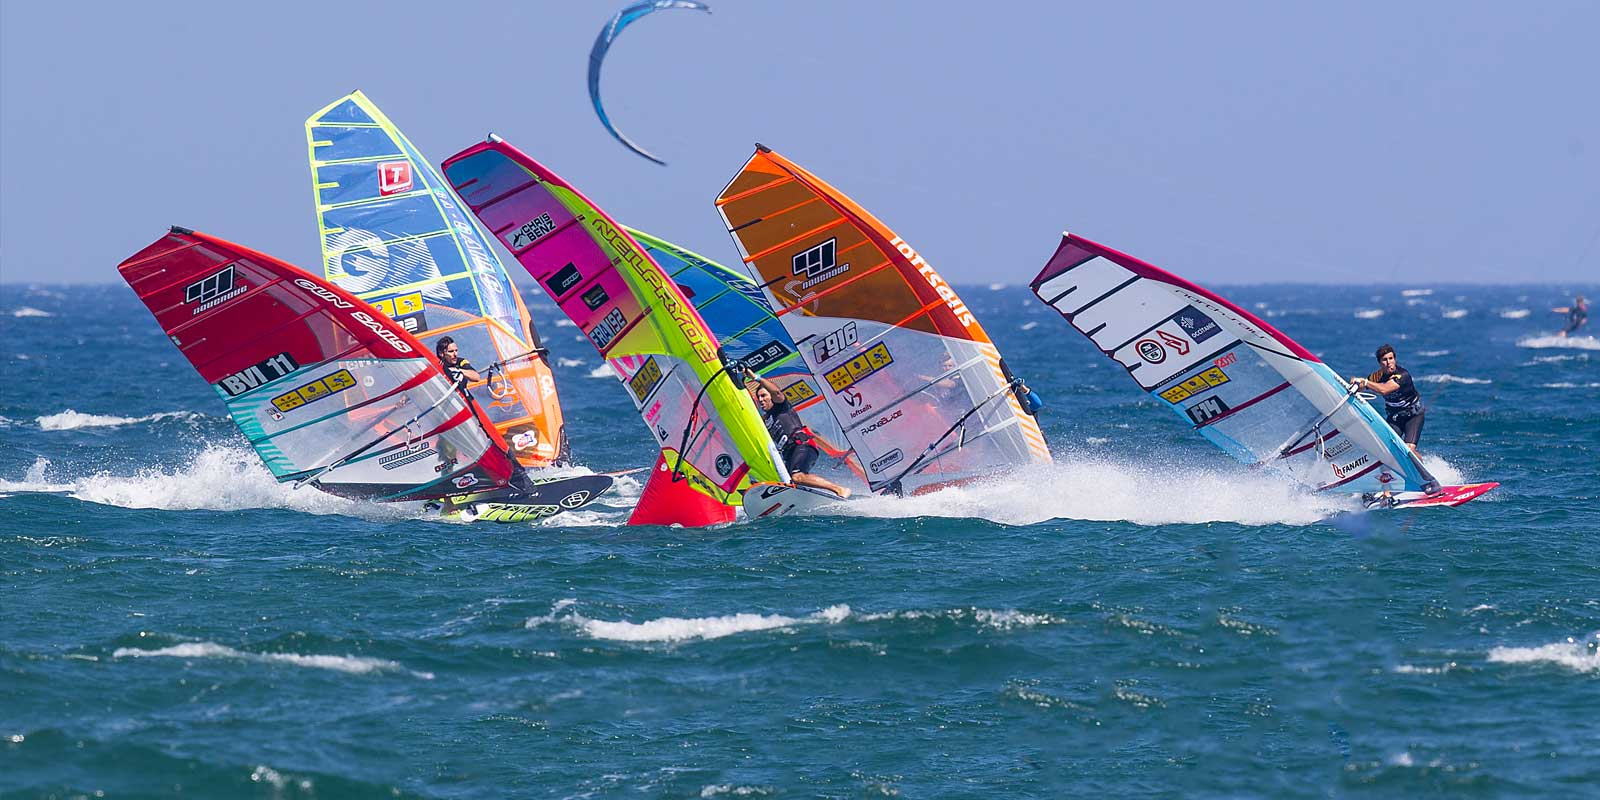 Taking Jaś to his first Windsurfing World Cup in Spain